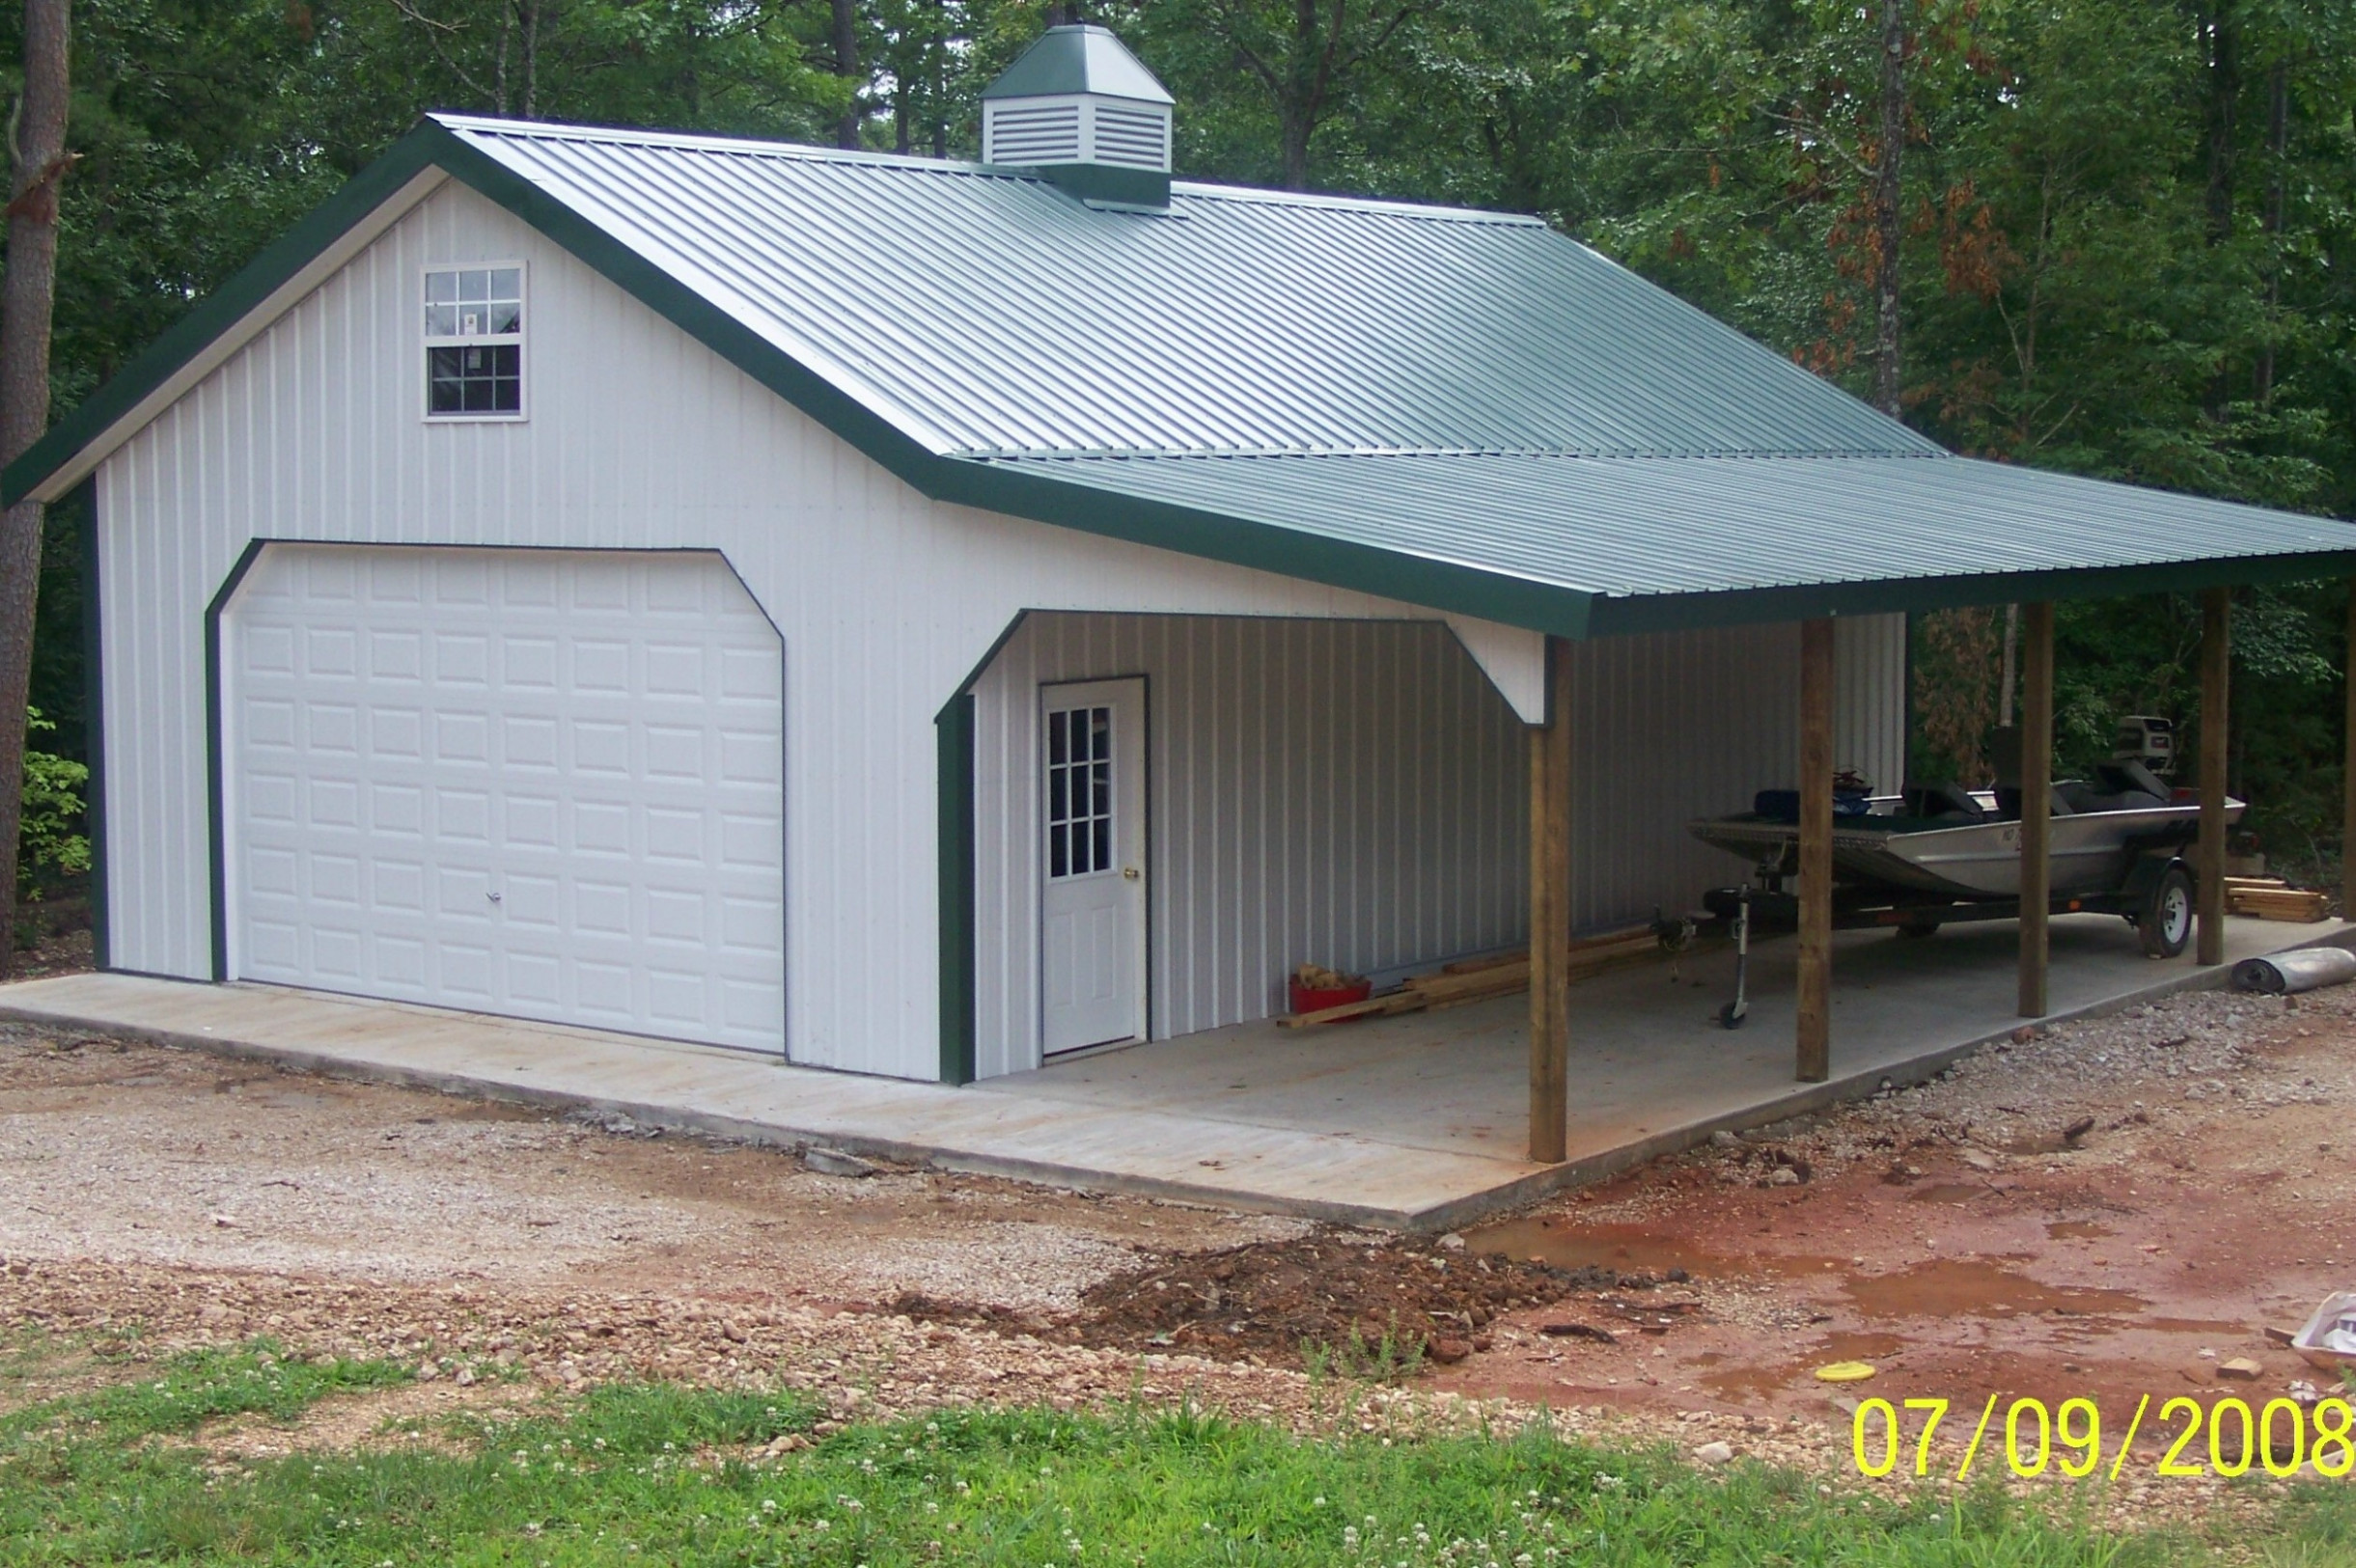 Carports Available In Wood And Polycarbonate A Simple ..